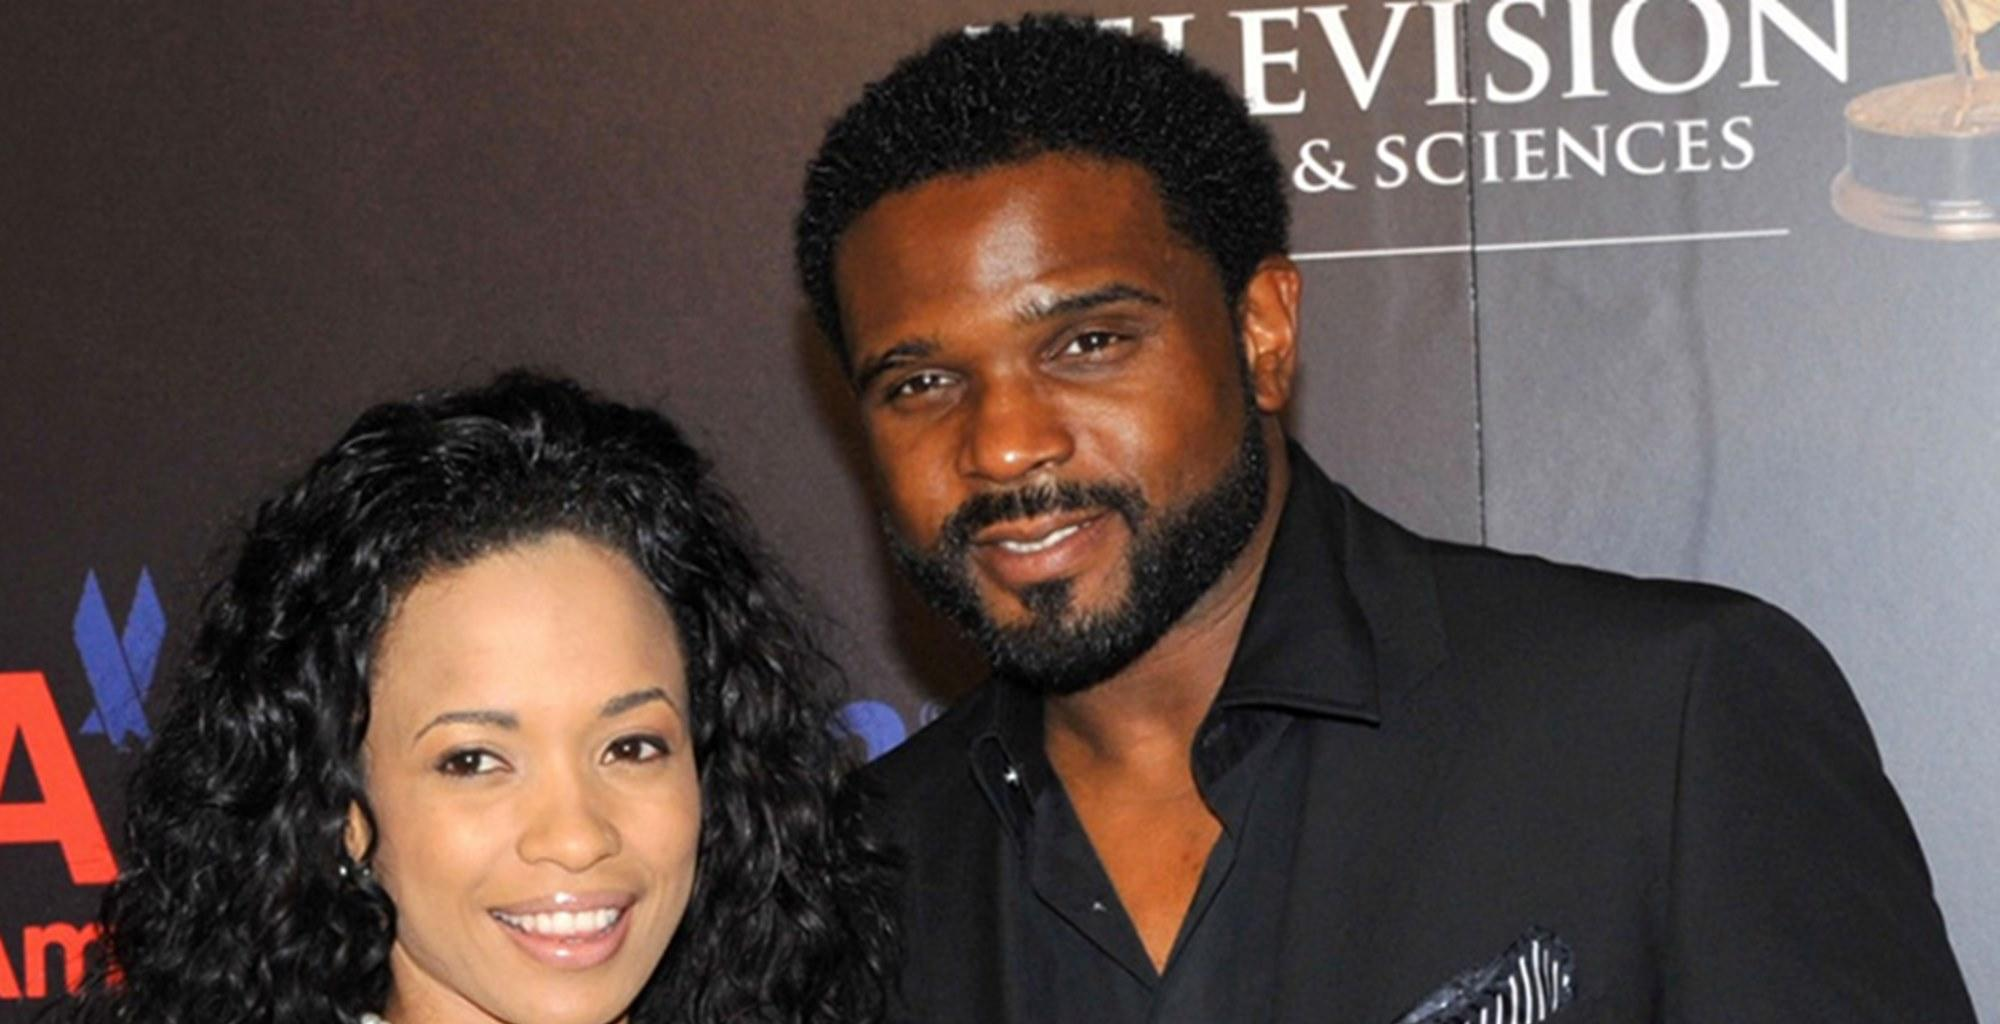 Family Matters' Star Darius McCrary Said Bobby Brown Told Him Not To Date Karrine Steffans For This Reason